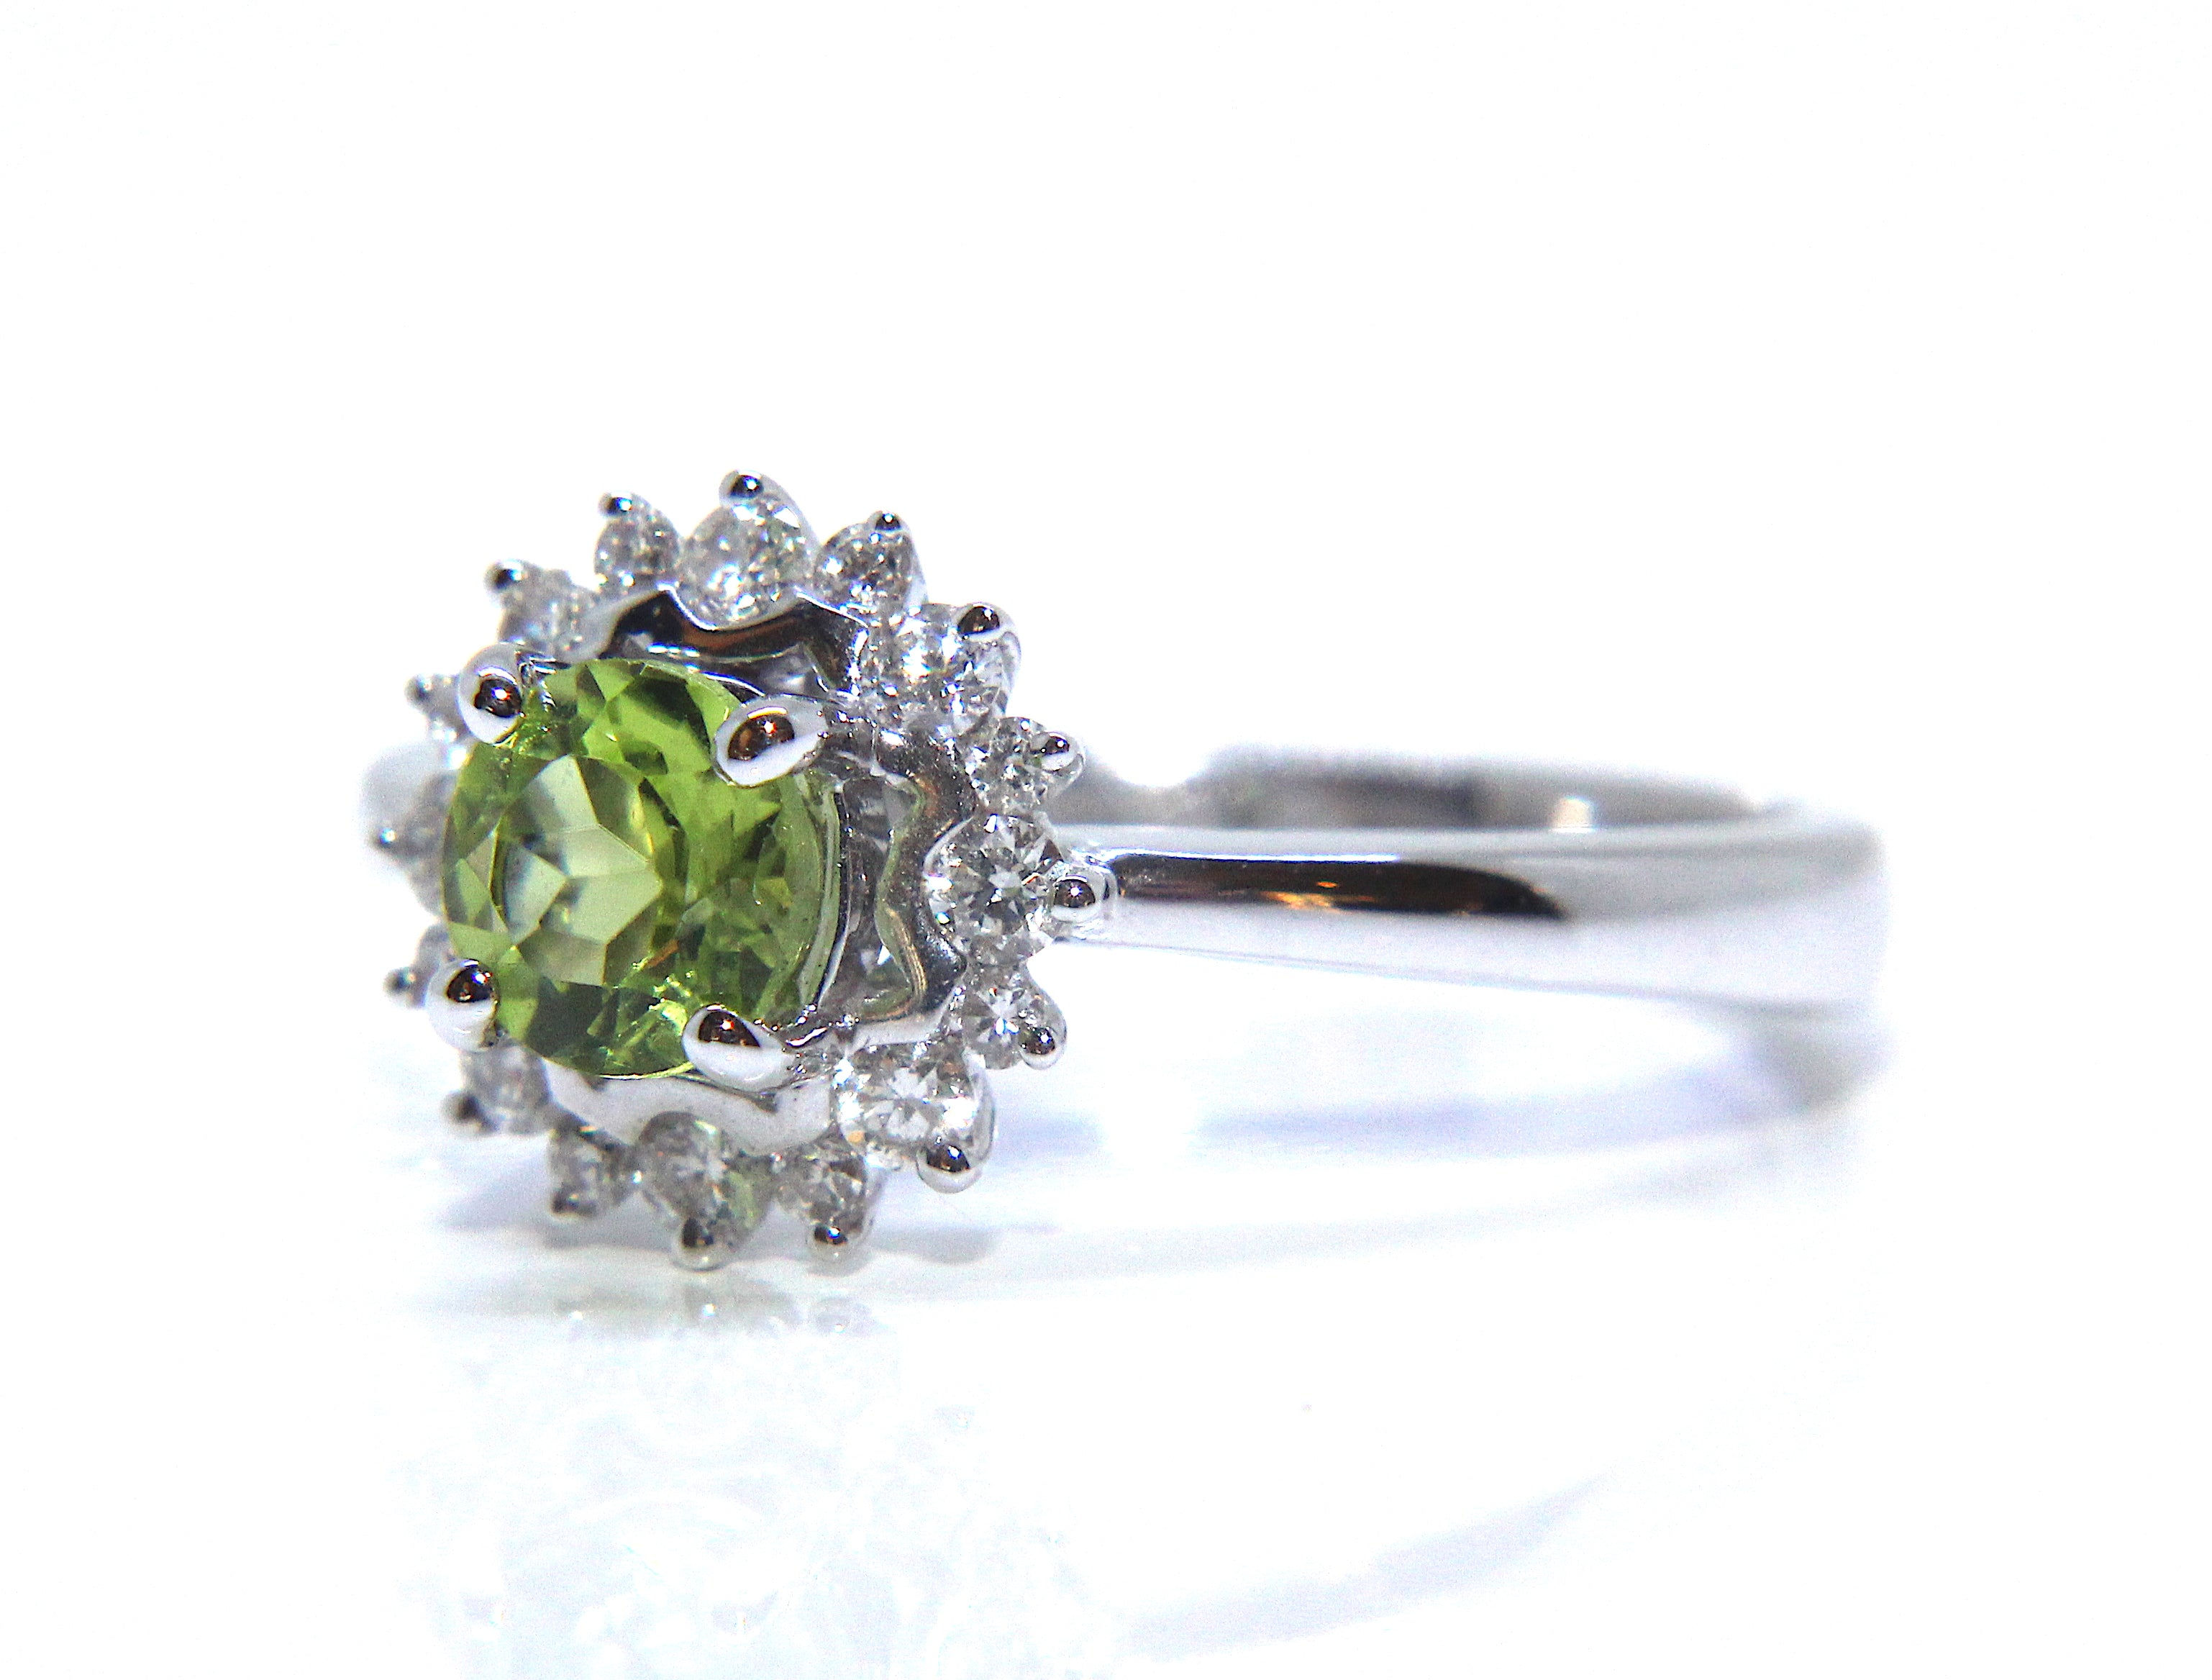 peridot peridotdiamond display gold kaufman m ring jewelry b allison rings diamond rich engagement